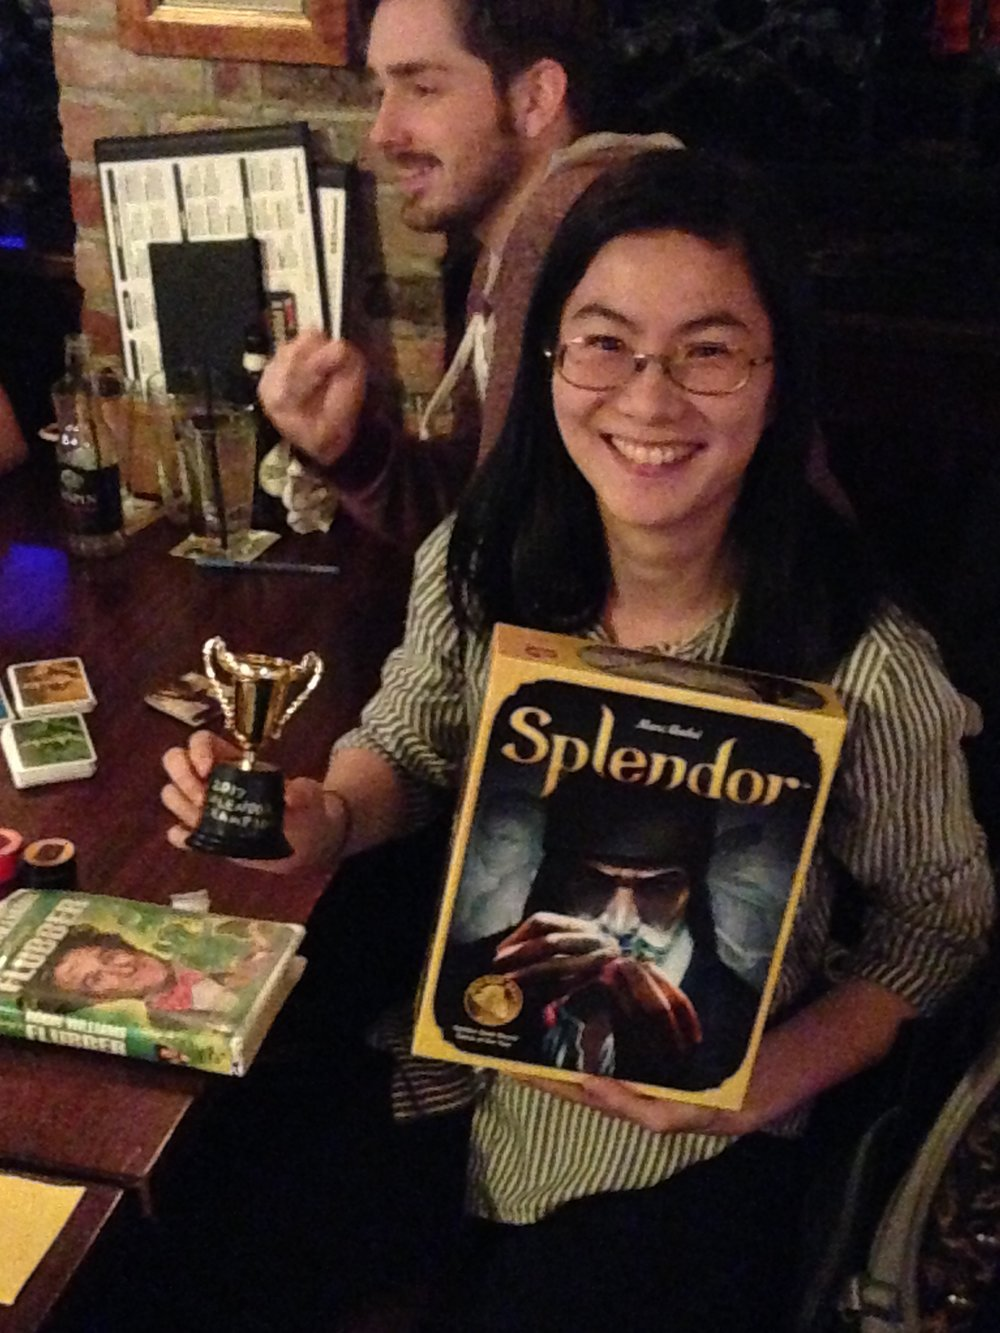 A hearty congratulations to Amy Wen for winning our first tournament of 2017: A two-round Splendor bout that saw her come in first in both games she played. That copy of Flubber on VHS that you see there? Part of the prize for her domination. To the victor go the spoils.